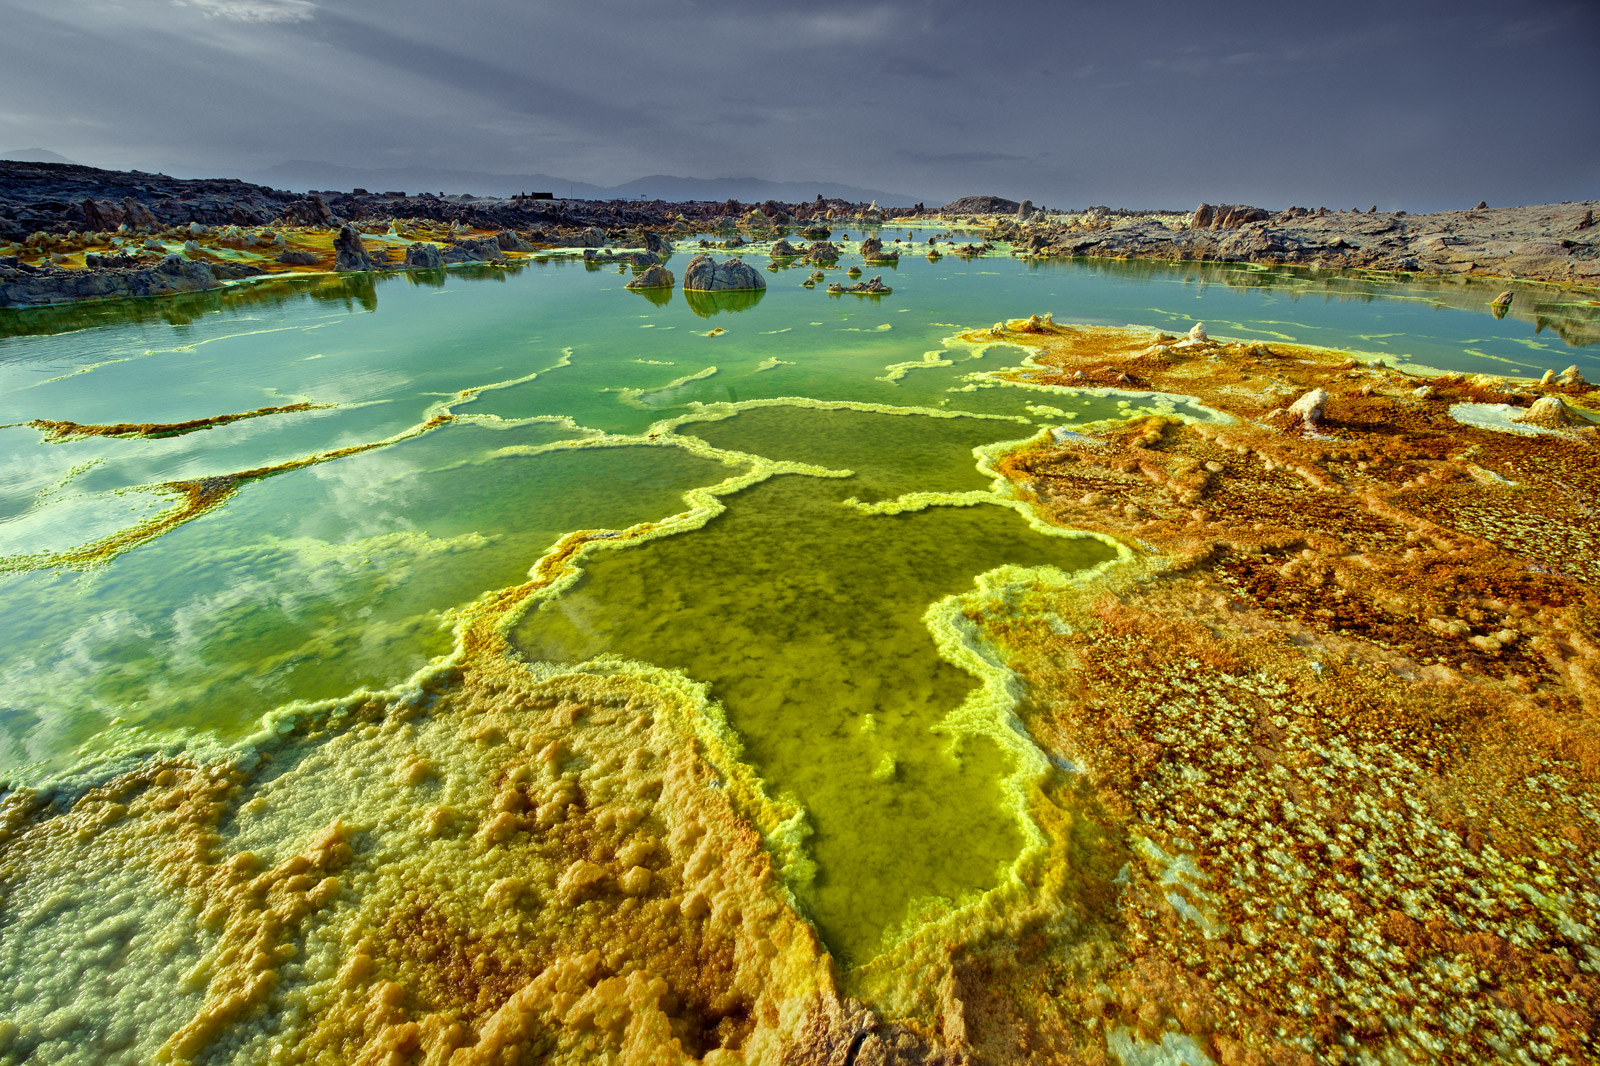 The surreal landscape of the sulphur pools at Dallol in the Danakil depression, Ethiopia. ©Trevor Cole